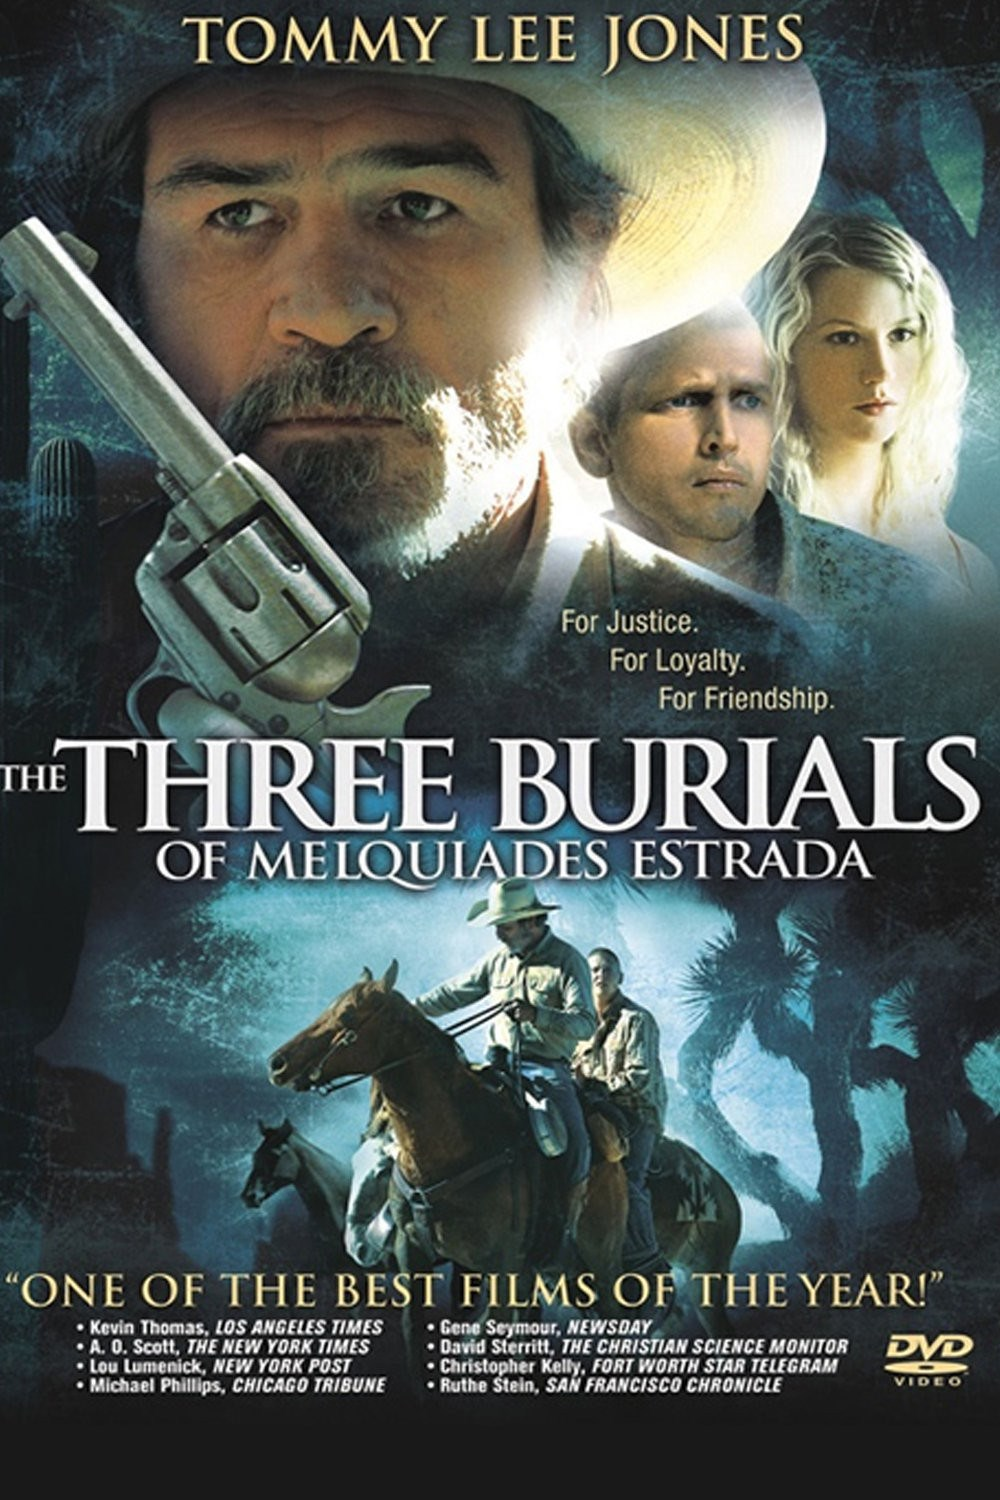 the three burials of melquiades estrada When brash texas border officer mike norton (barry pepper) wrongfully kills and buries the friend and ranch hand of pete perkins (tommy lee jones), the latter is reminded of a promise he made to bury his friend, melquiades estrada (julio cesar cedillo), in his mexican home town.